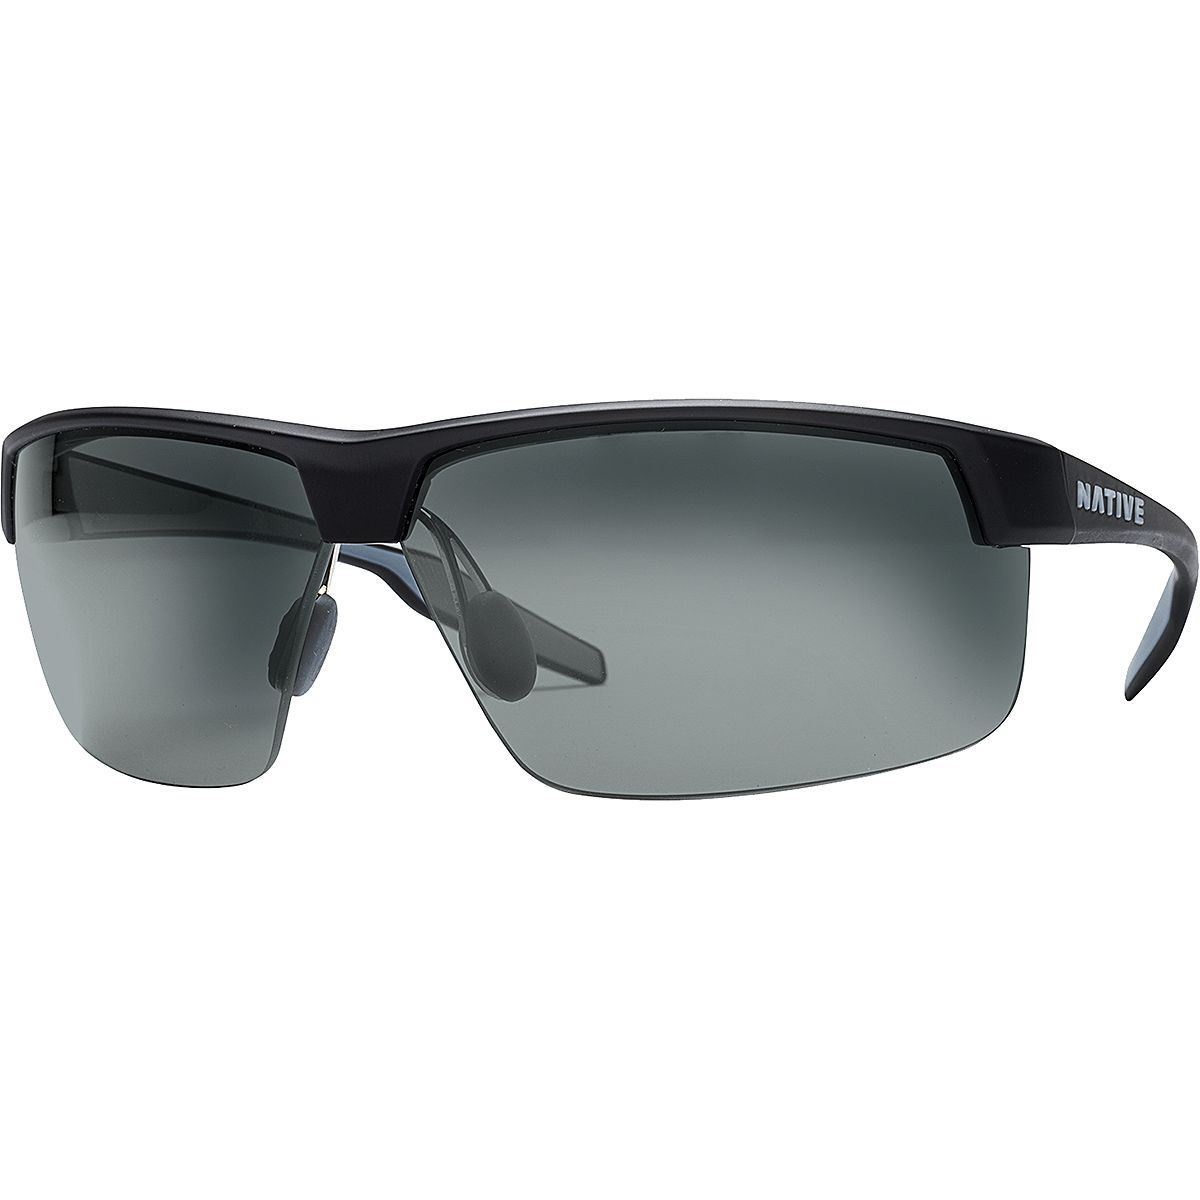 photo: Native Eyewear Hardtop Ultra sport sunglass